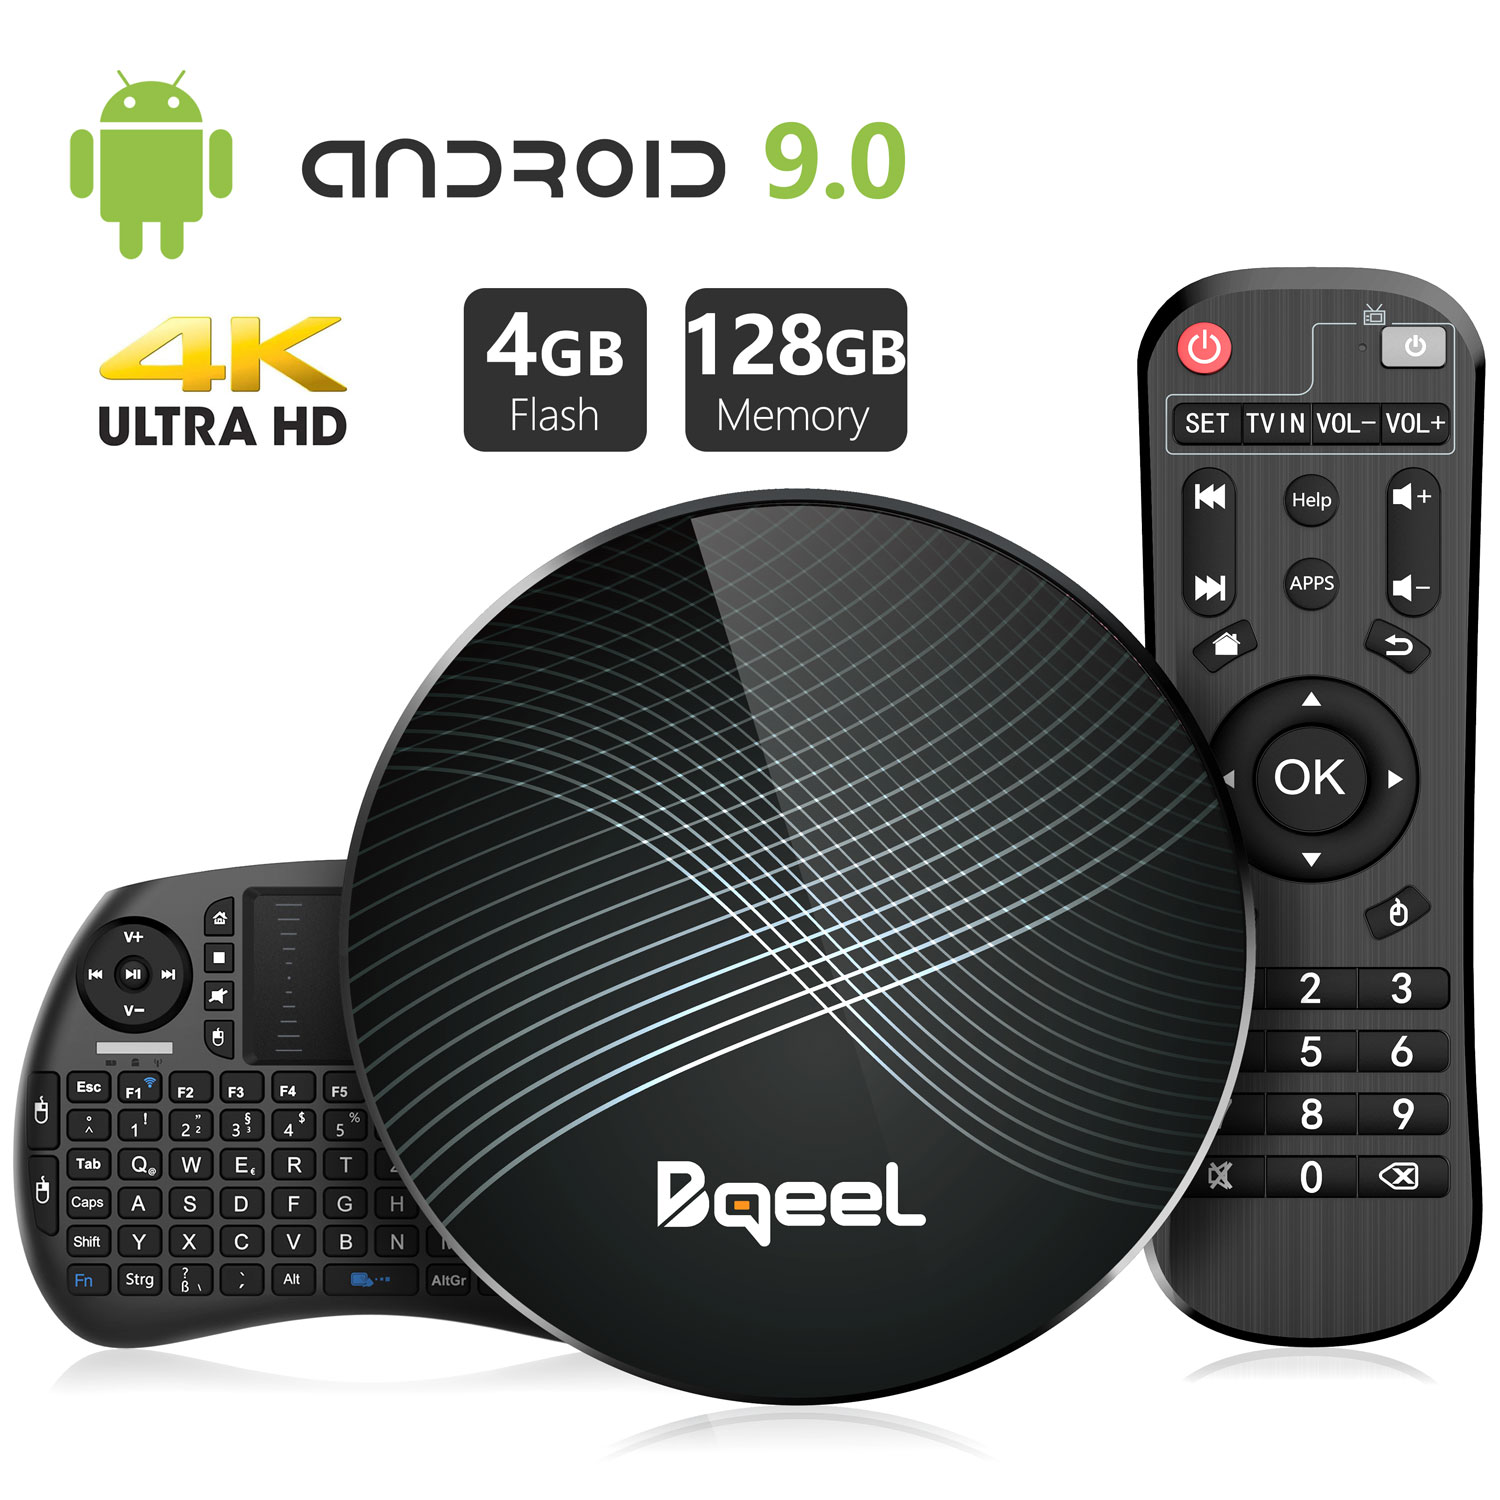 Bqeel U1 MAX android tv box with mini keyboard